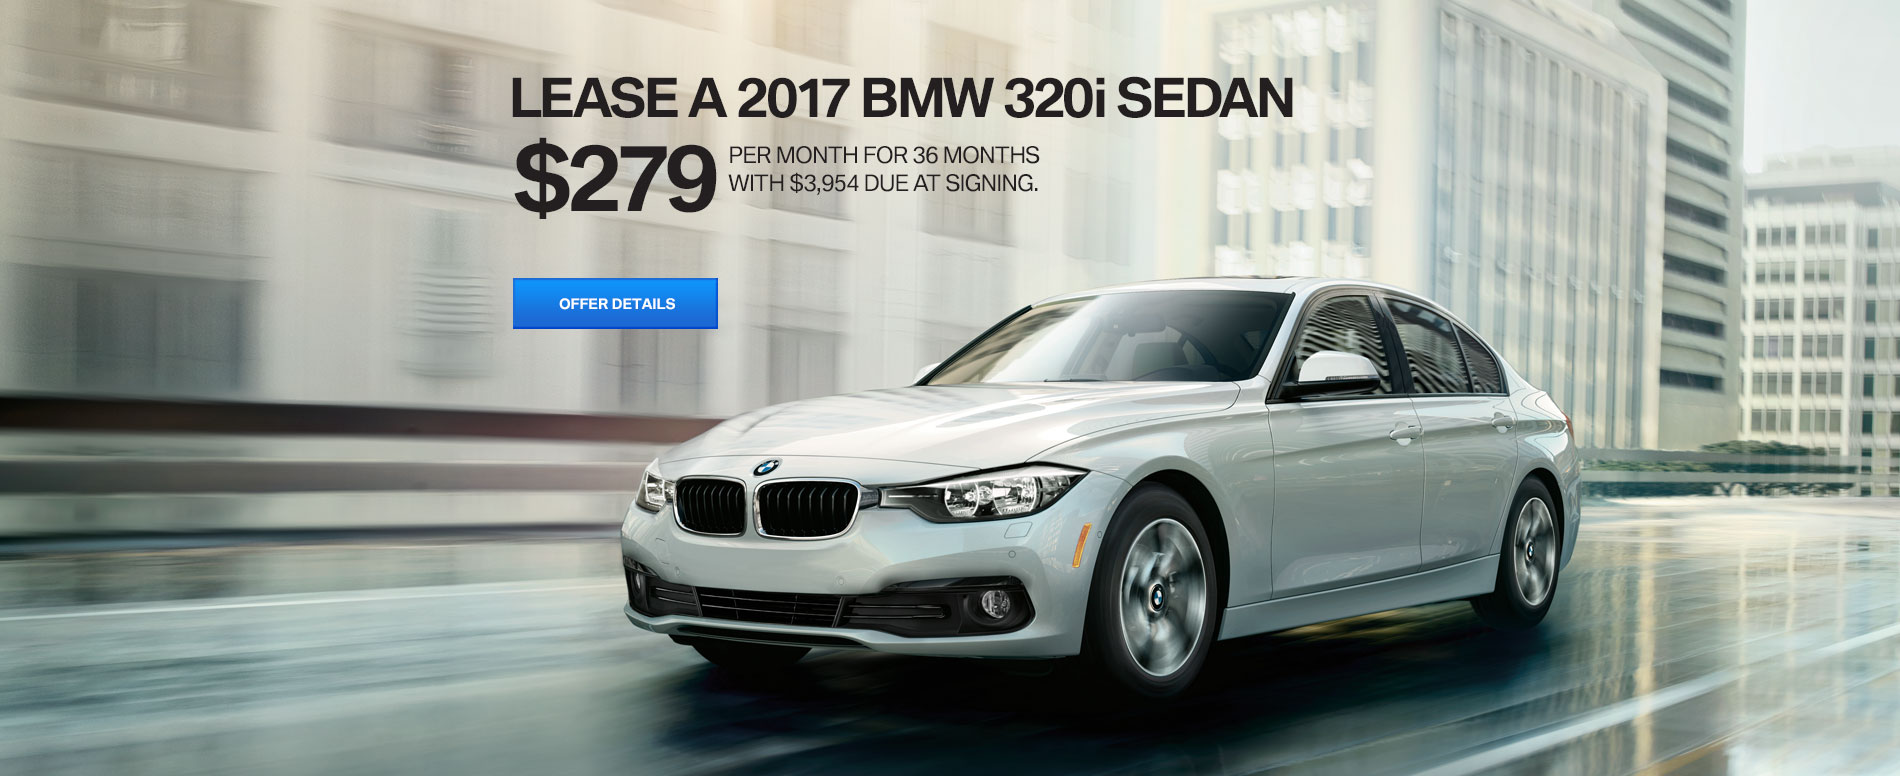 BMW New  Used Car Dealer  New  Used Cars in San Francisco San